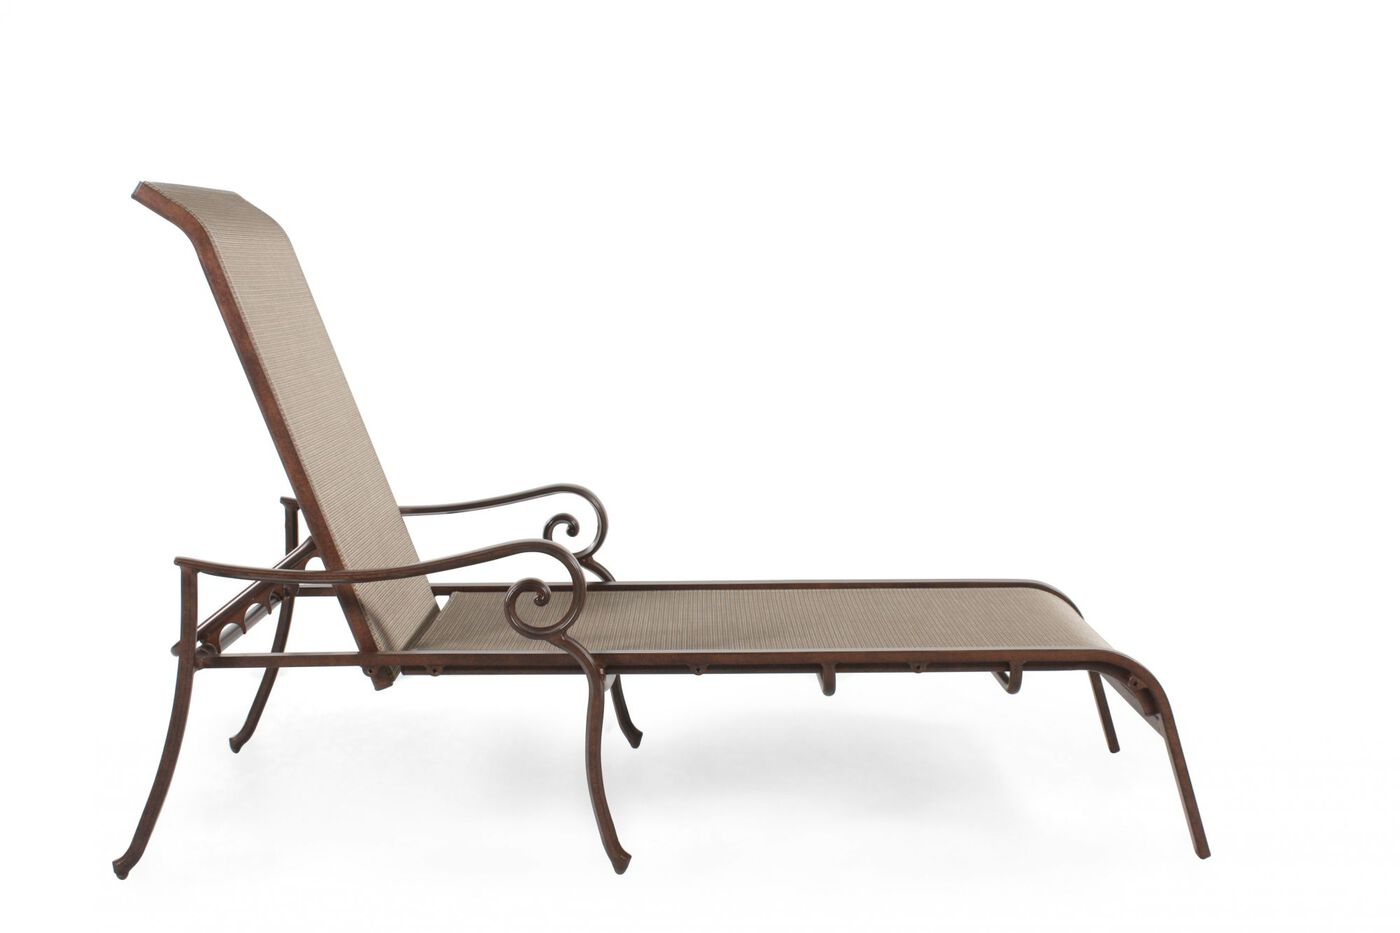 100 agio patio furniture chaise lounge toscana outdoor for Anti gravity suspension chaise lounge